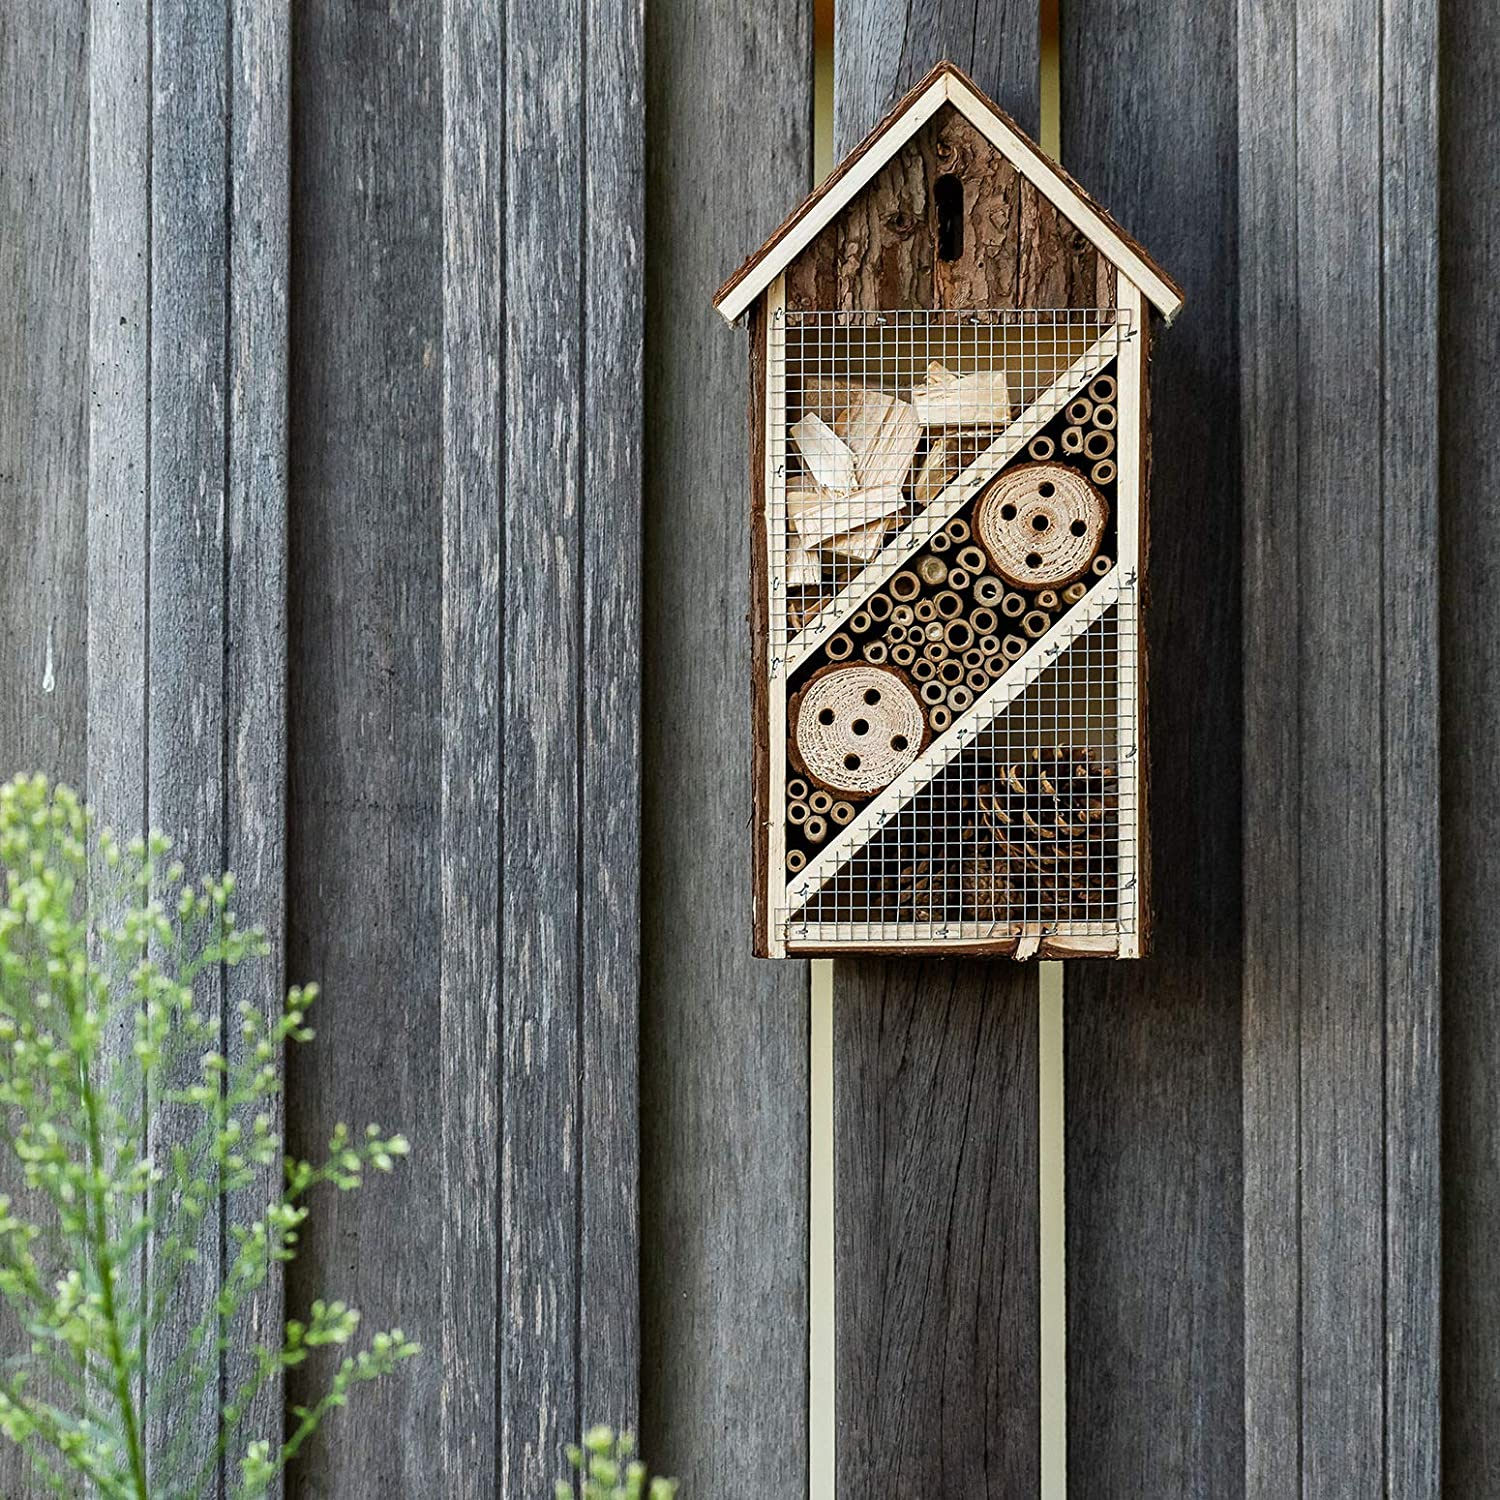 Insect house natural materials Bee hotel//shelter for insects bambuswald Insect hotel 19.5 x 10 x 37 cm Living nature /& species protection for your home -Nistkasten Haus N/ützlingshotel Schutz